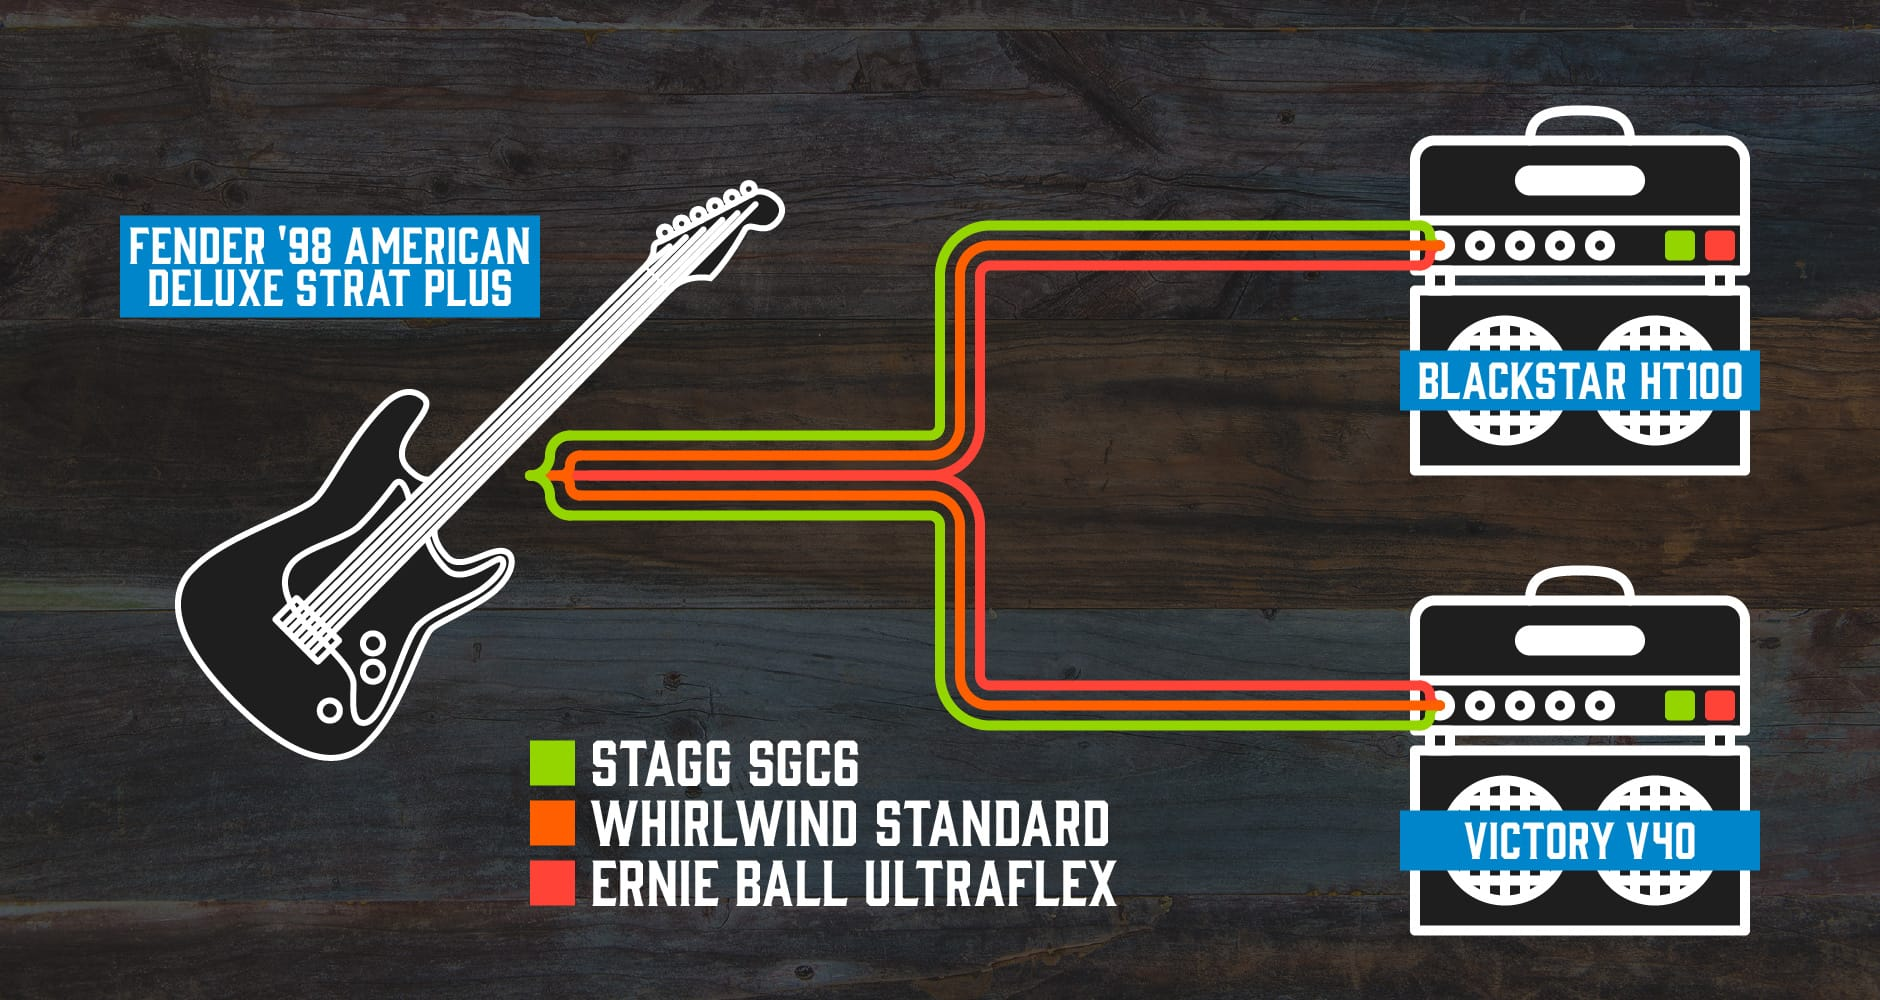 Cable Test Diagram, Stagg, Whirlwind and Ernie Ball